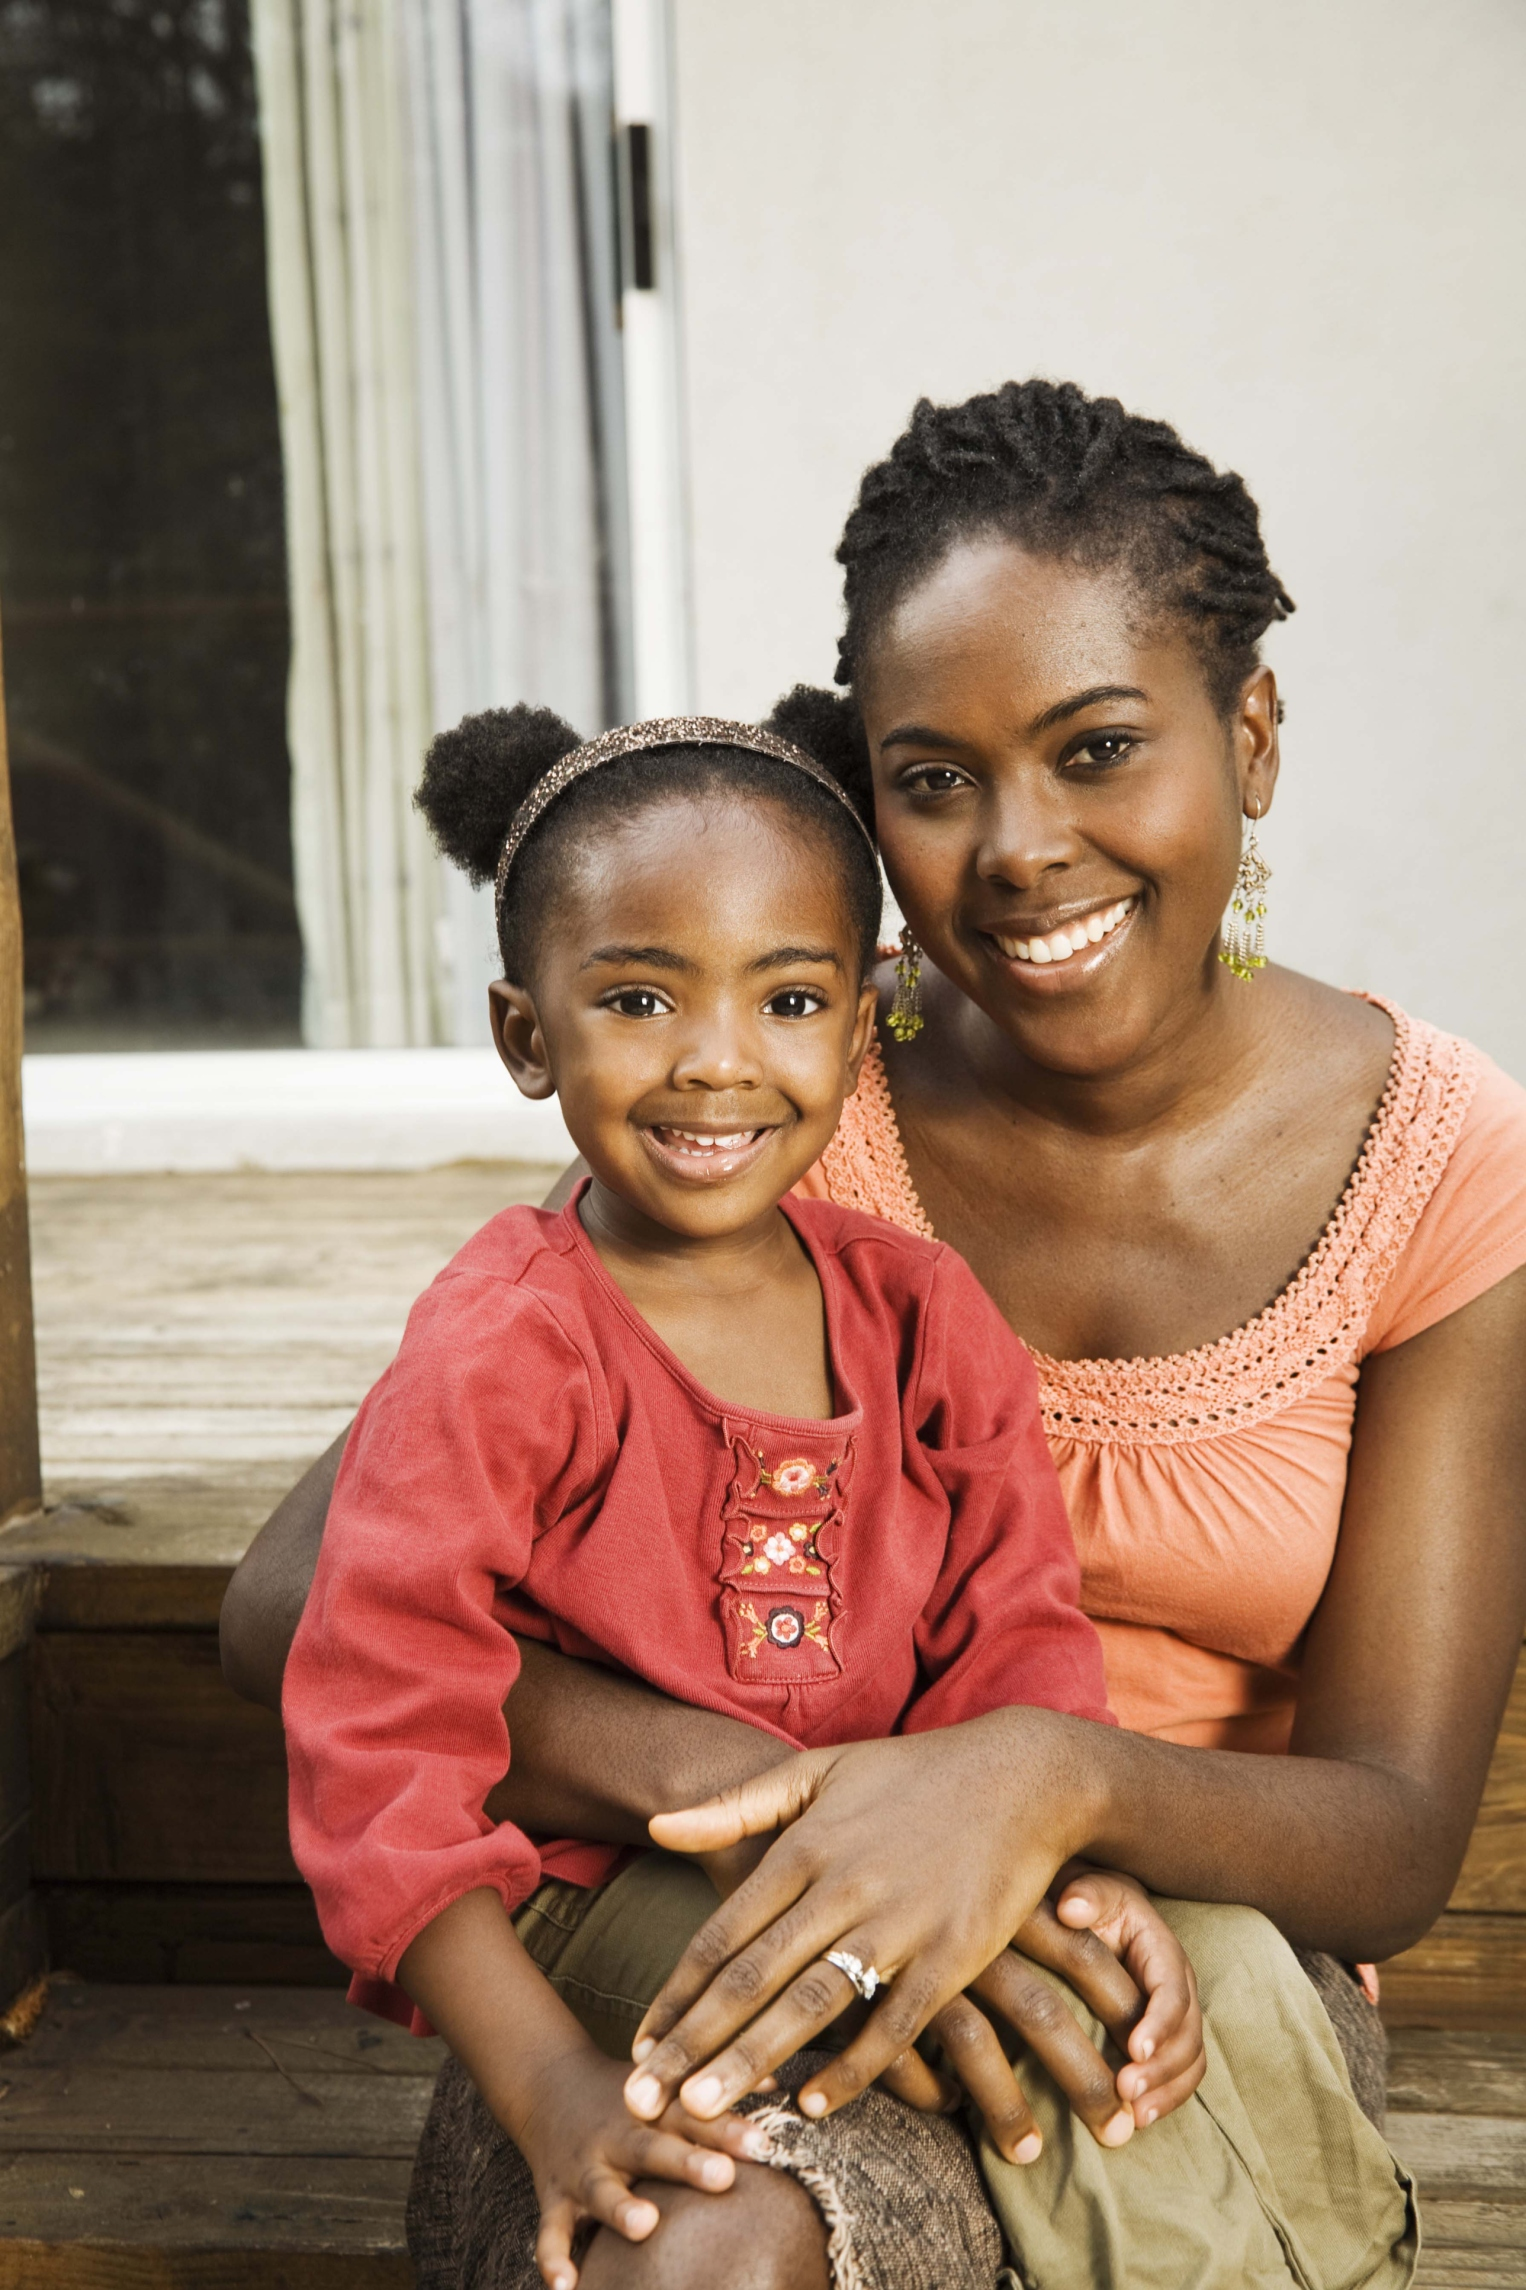 How To Grow The Edges Of African American Children S Hair